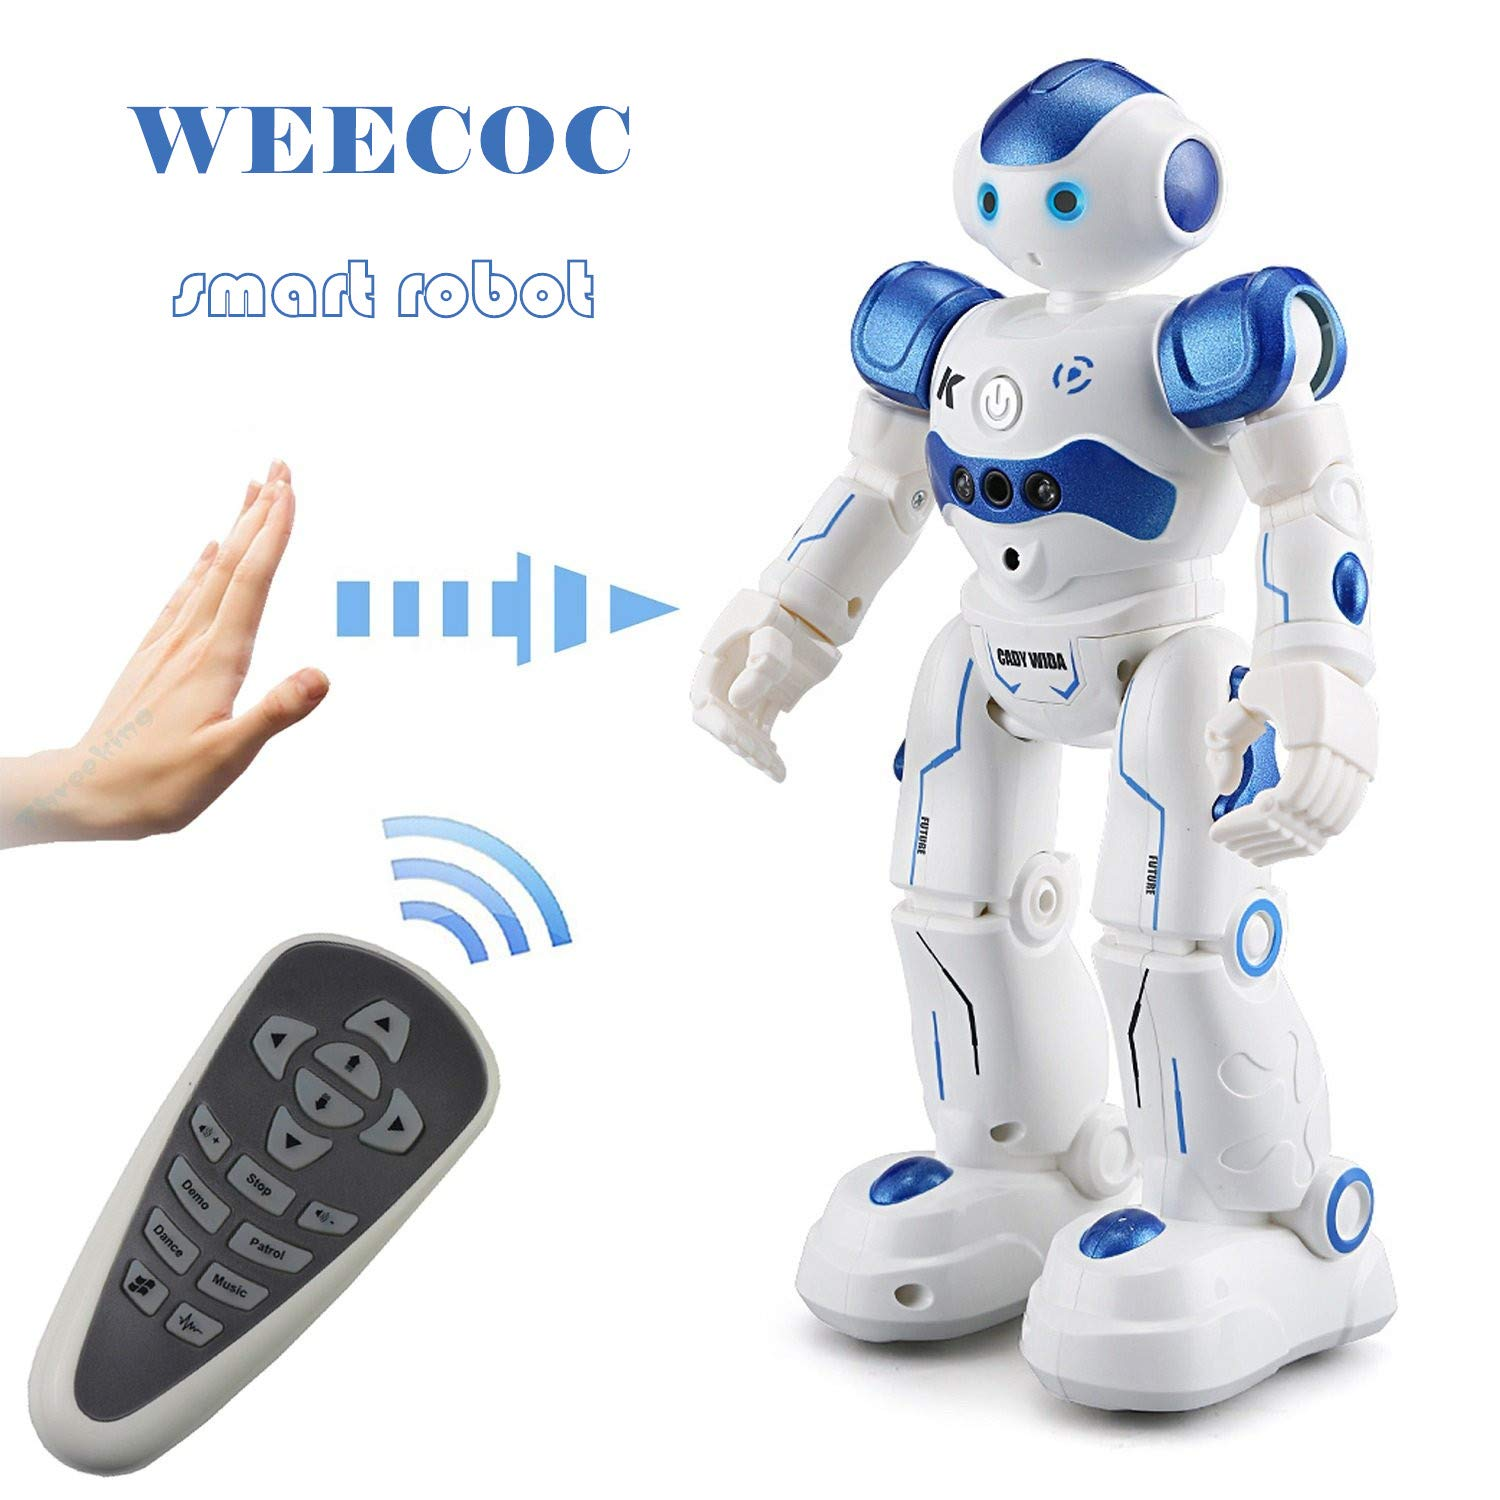 WEECOC Smart Robot Toys Gesture Control Remote Control Robot Kids Toys Birthday Can Singing Dancing Speaking Two Walking Models (White) by WEECOC (Image #1)